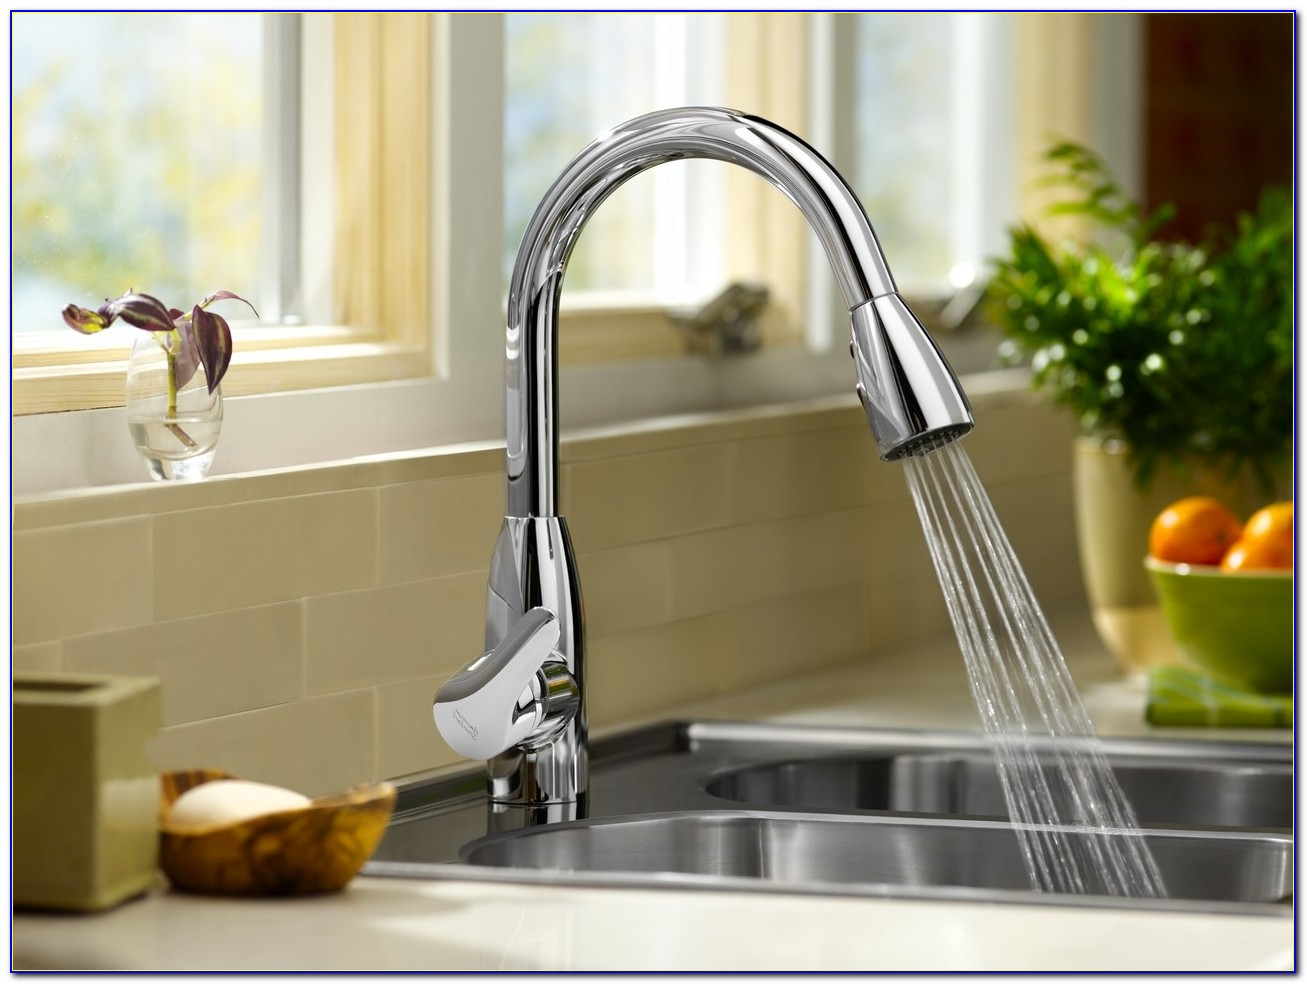 Kitchen Faucet With Built In Filtered Water Dispenser